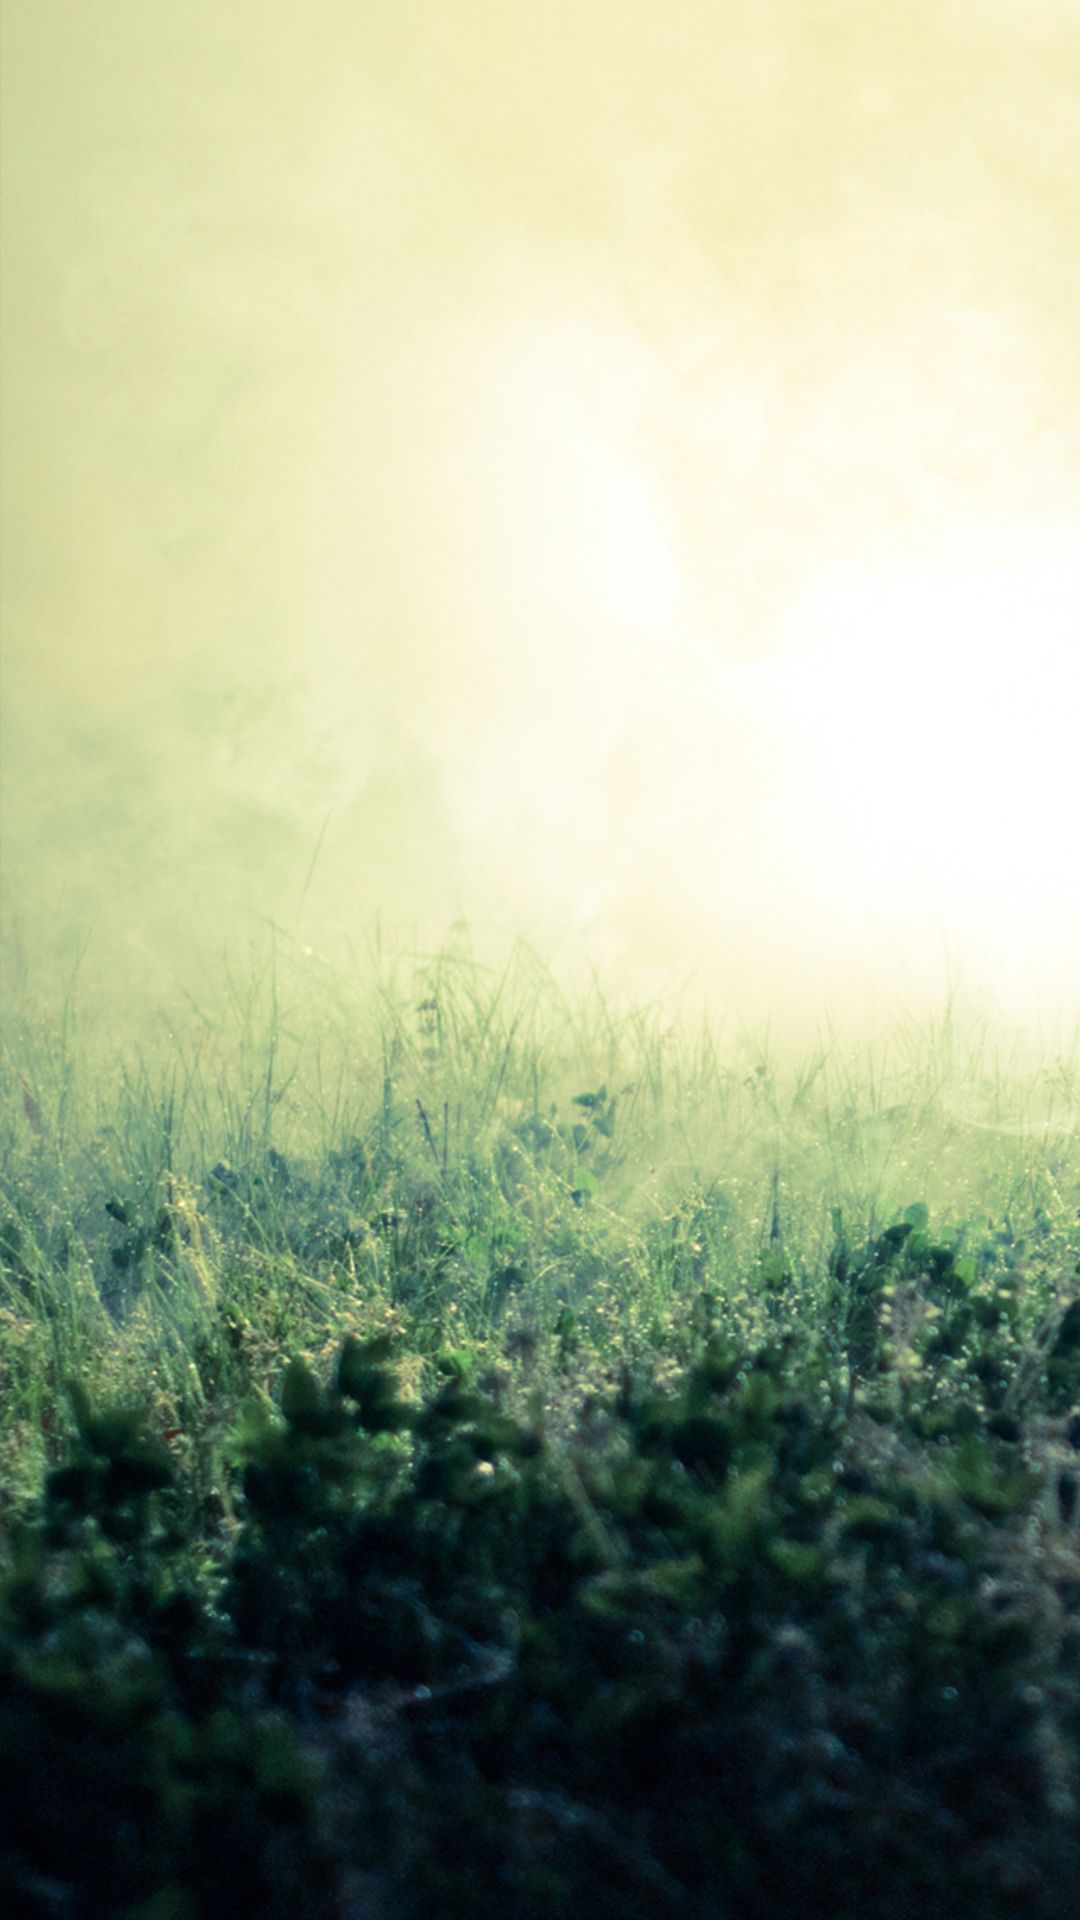 Pure Simple Mist Grass Field Bokeh Background Iphone 6 Wallpaper